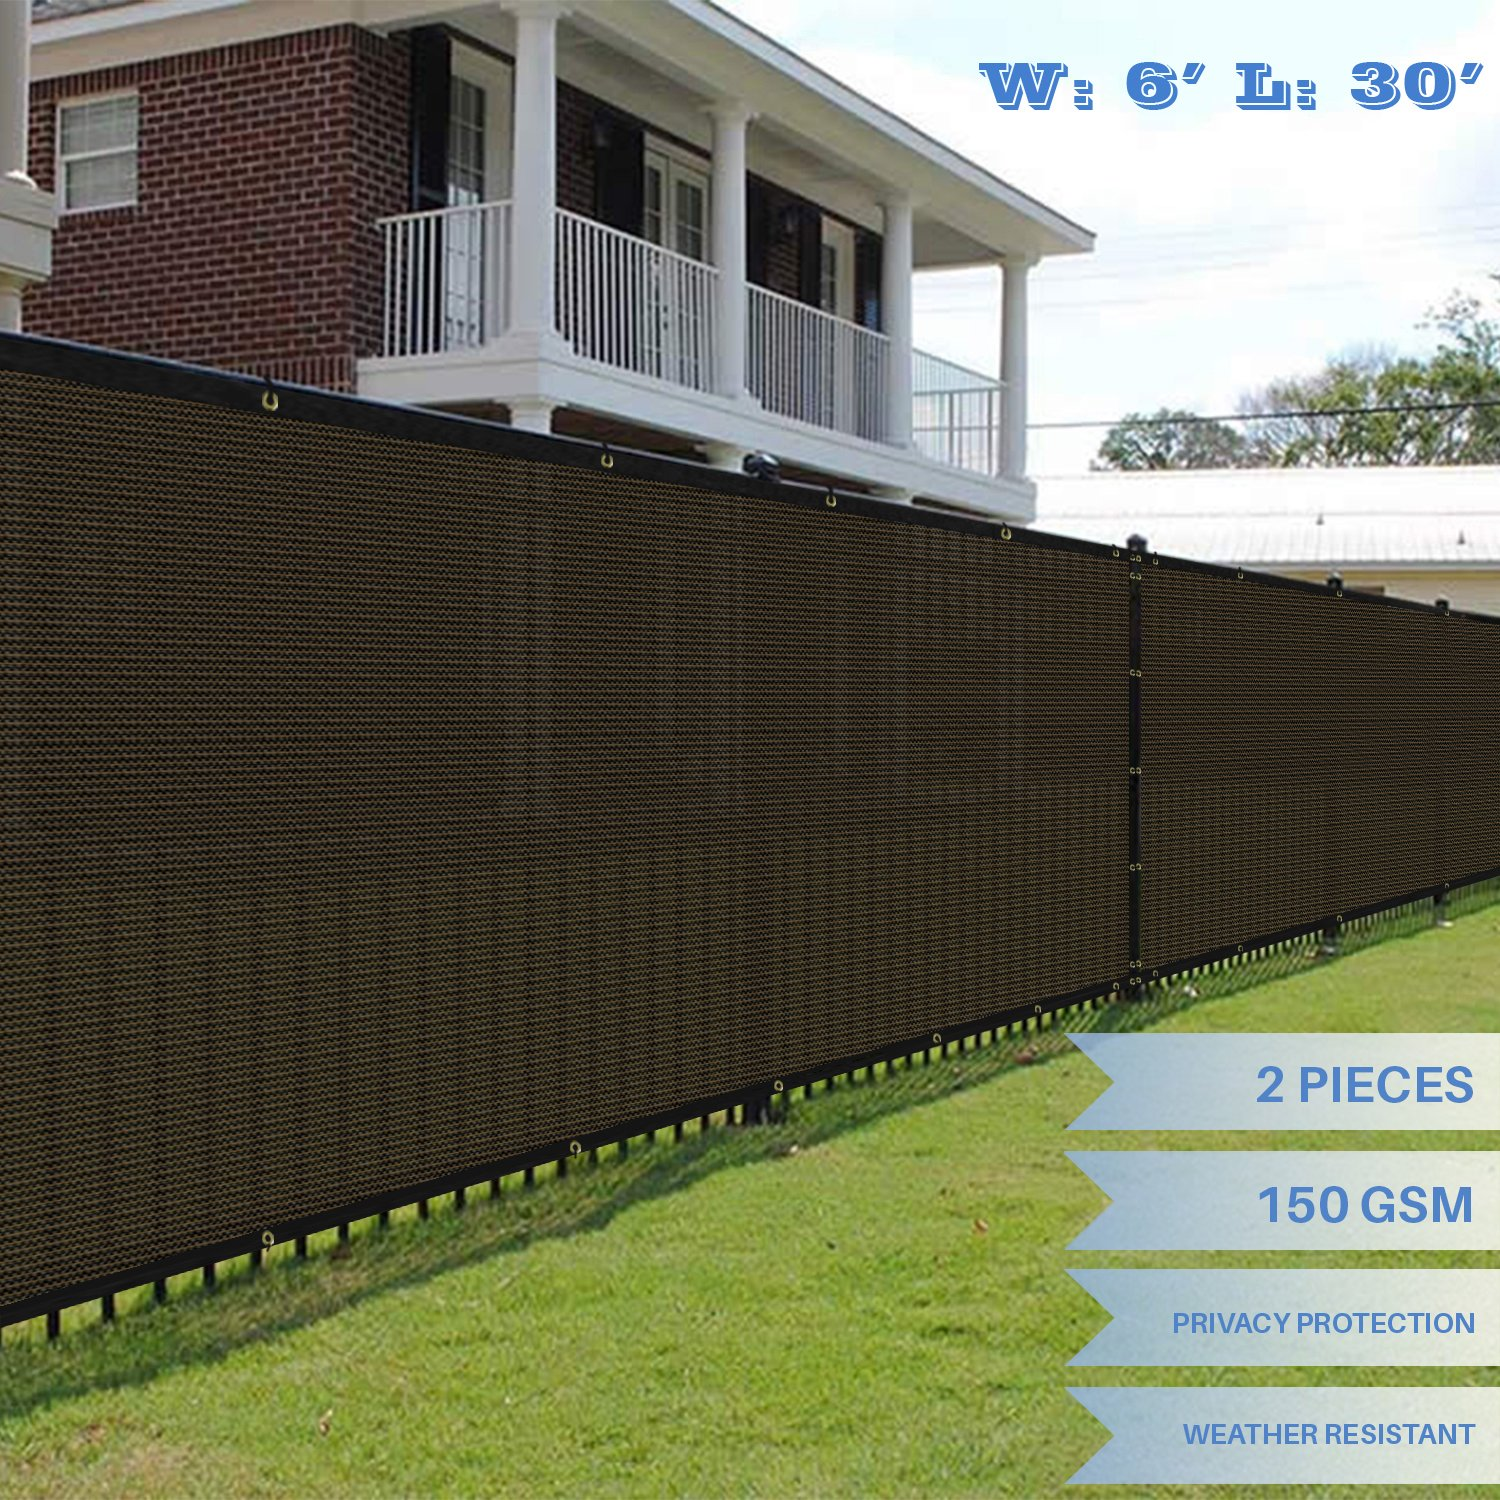 E&K Sunrise 6' x 30' Brown Fence Privacy Screen, Commercial Outdoor Backyard Shade Windscreen Mesh Fabric 3 Years Warranty (Customized Sizes Available) - Set of 2